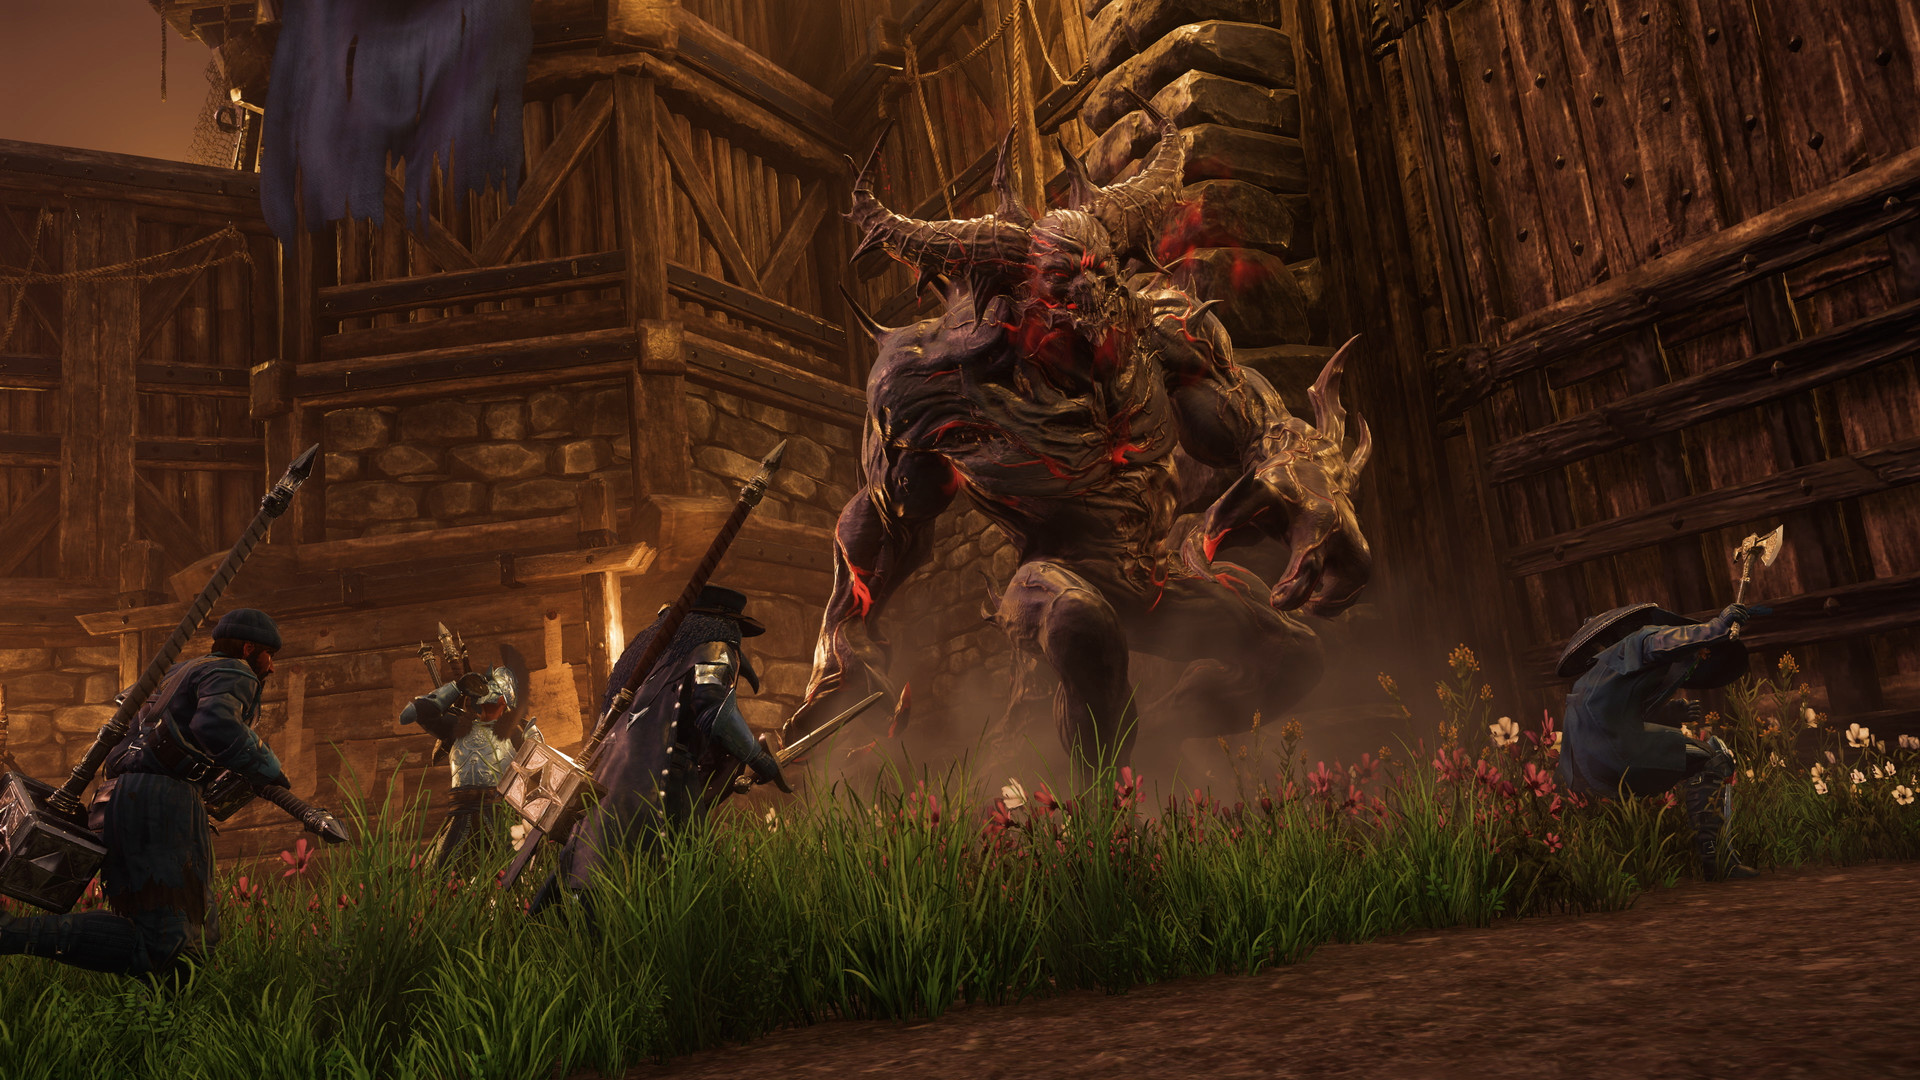 Amazon's New World becomes one of Steam's most played games on launch day - CNET